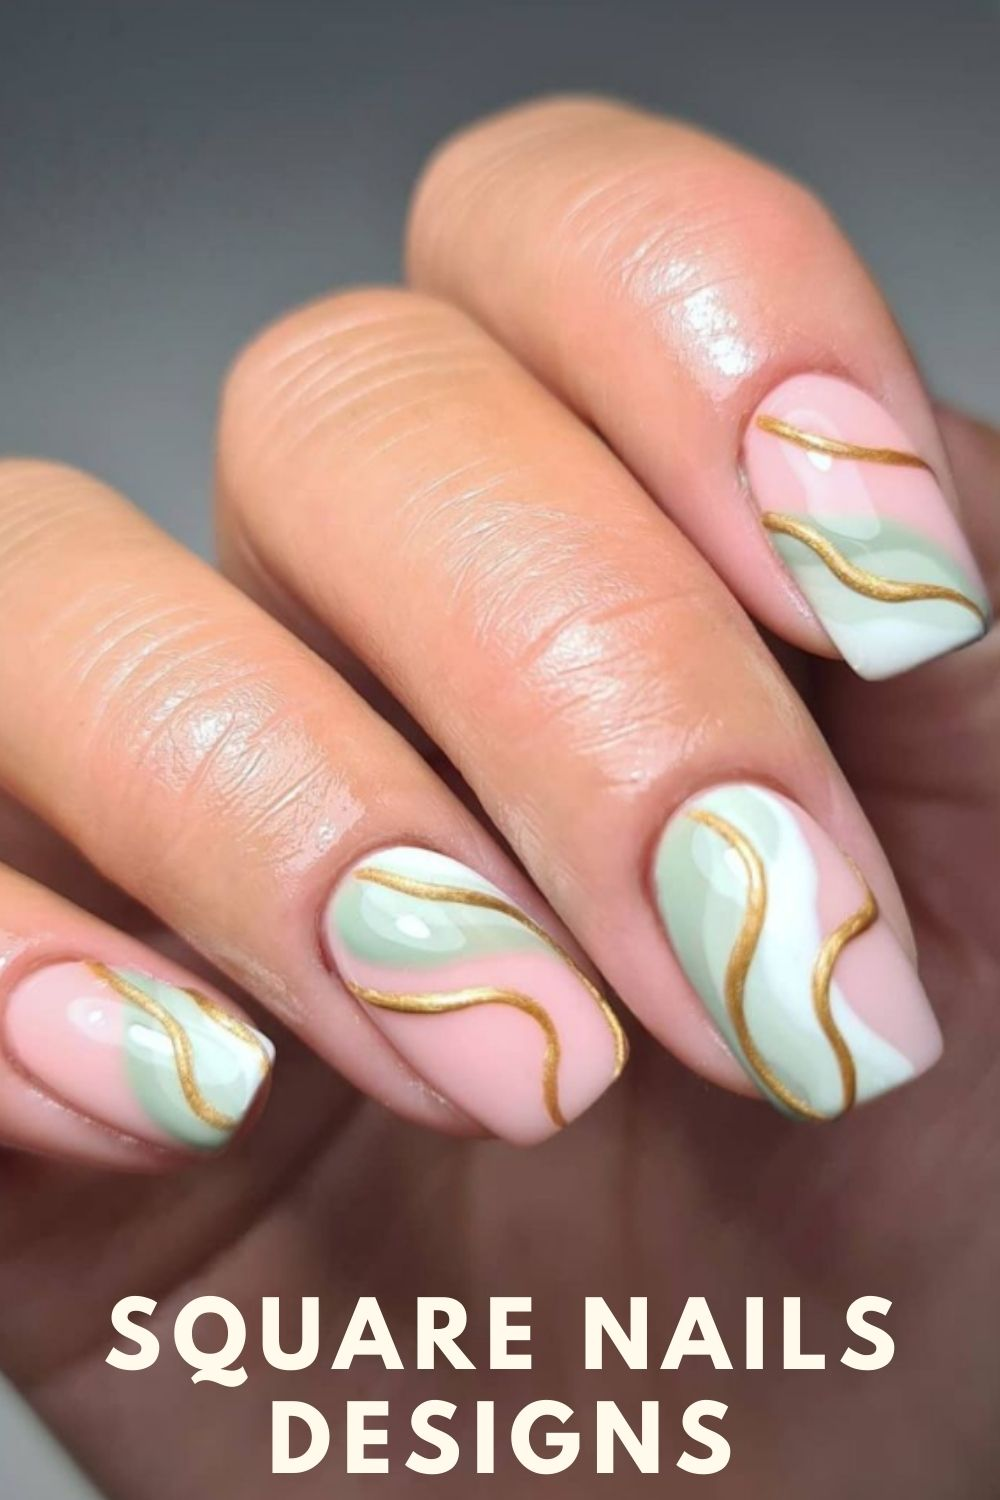 32 Simple Summer Square Acrylic Nails Designs in 2021